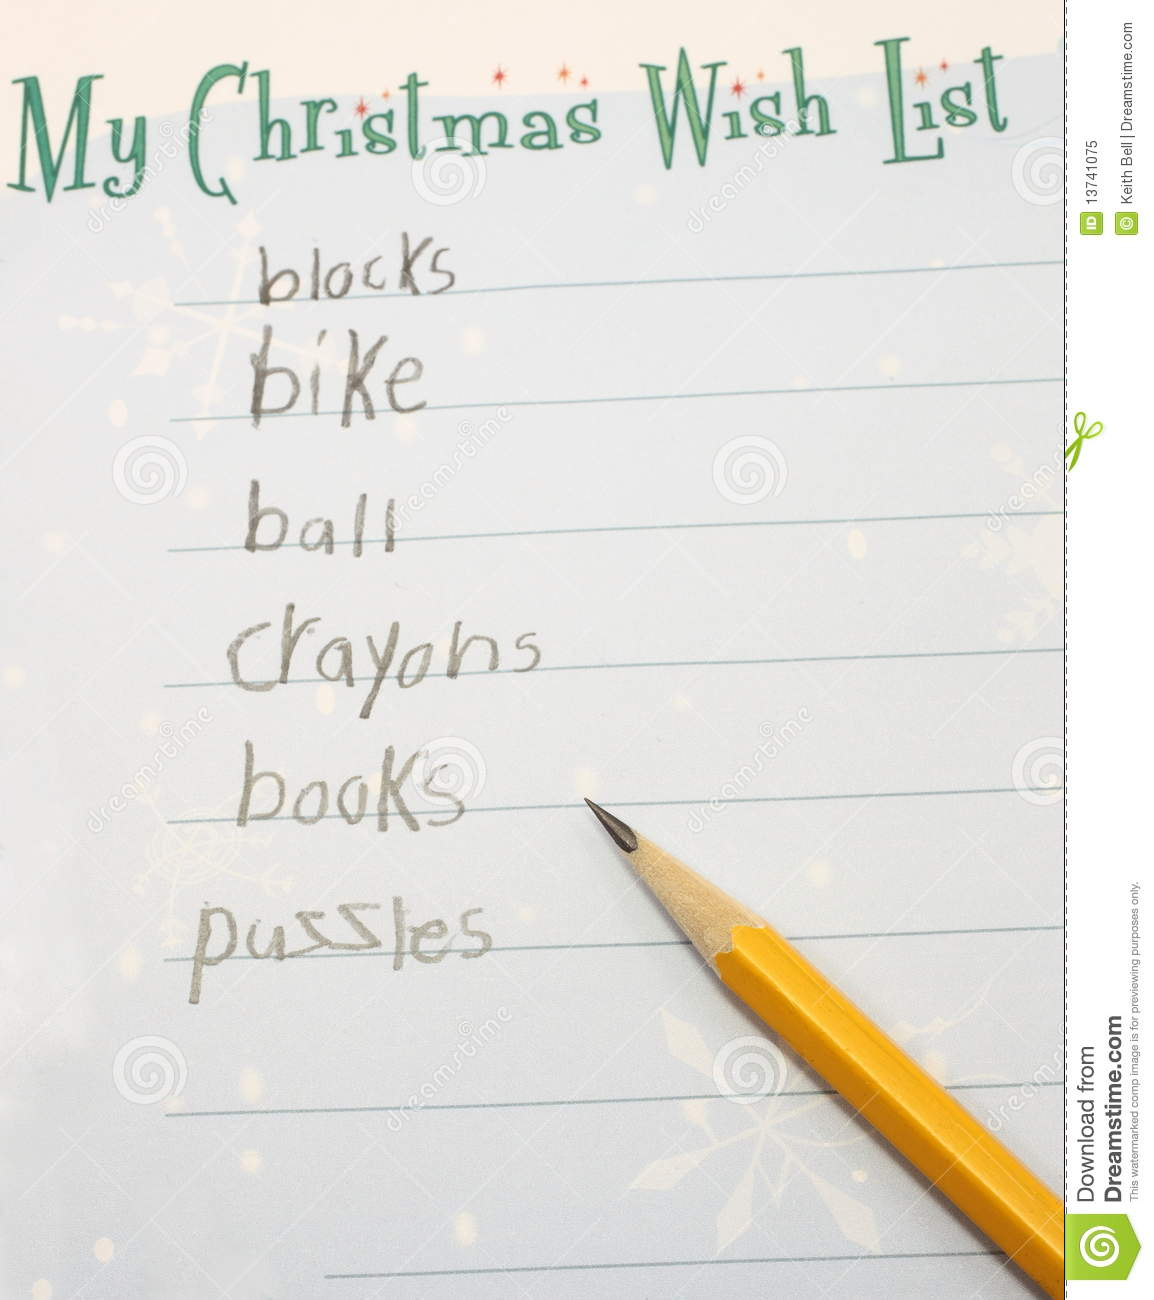 child's Christmas Wish list with a pencil showing the toys desired.